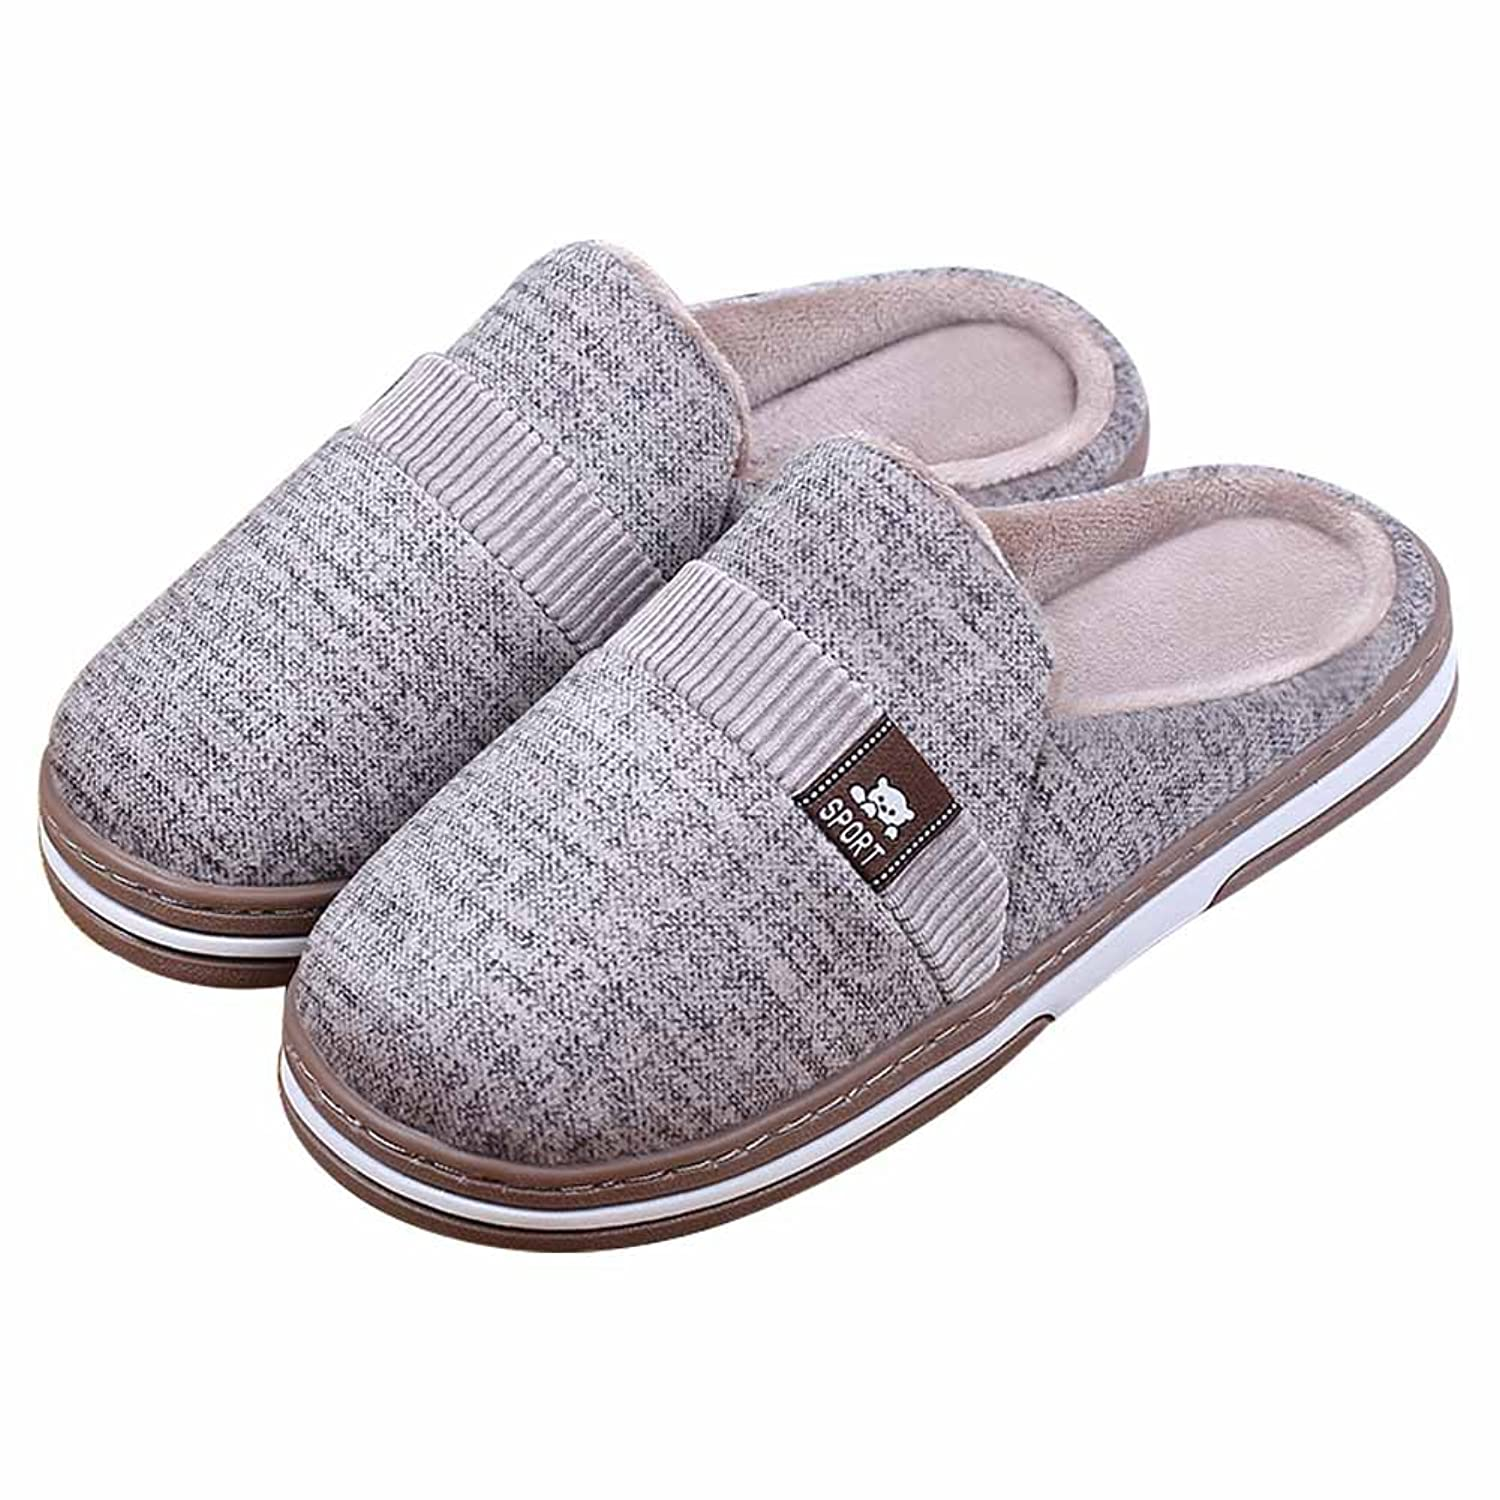 Soft Couple House Slippers Anti-Slip Warm Cotton Comfortable Unisex Home Shoes